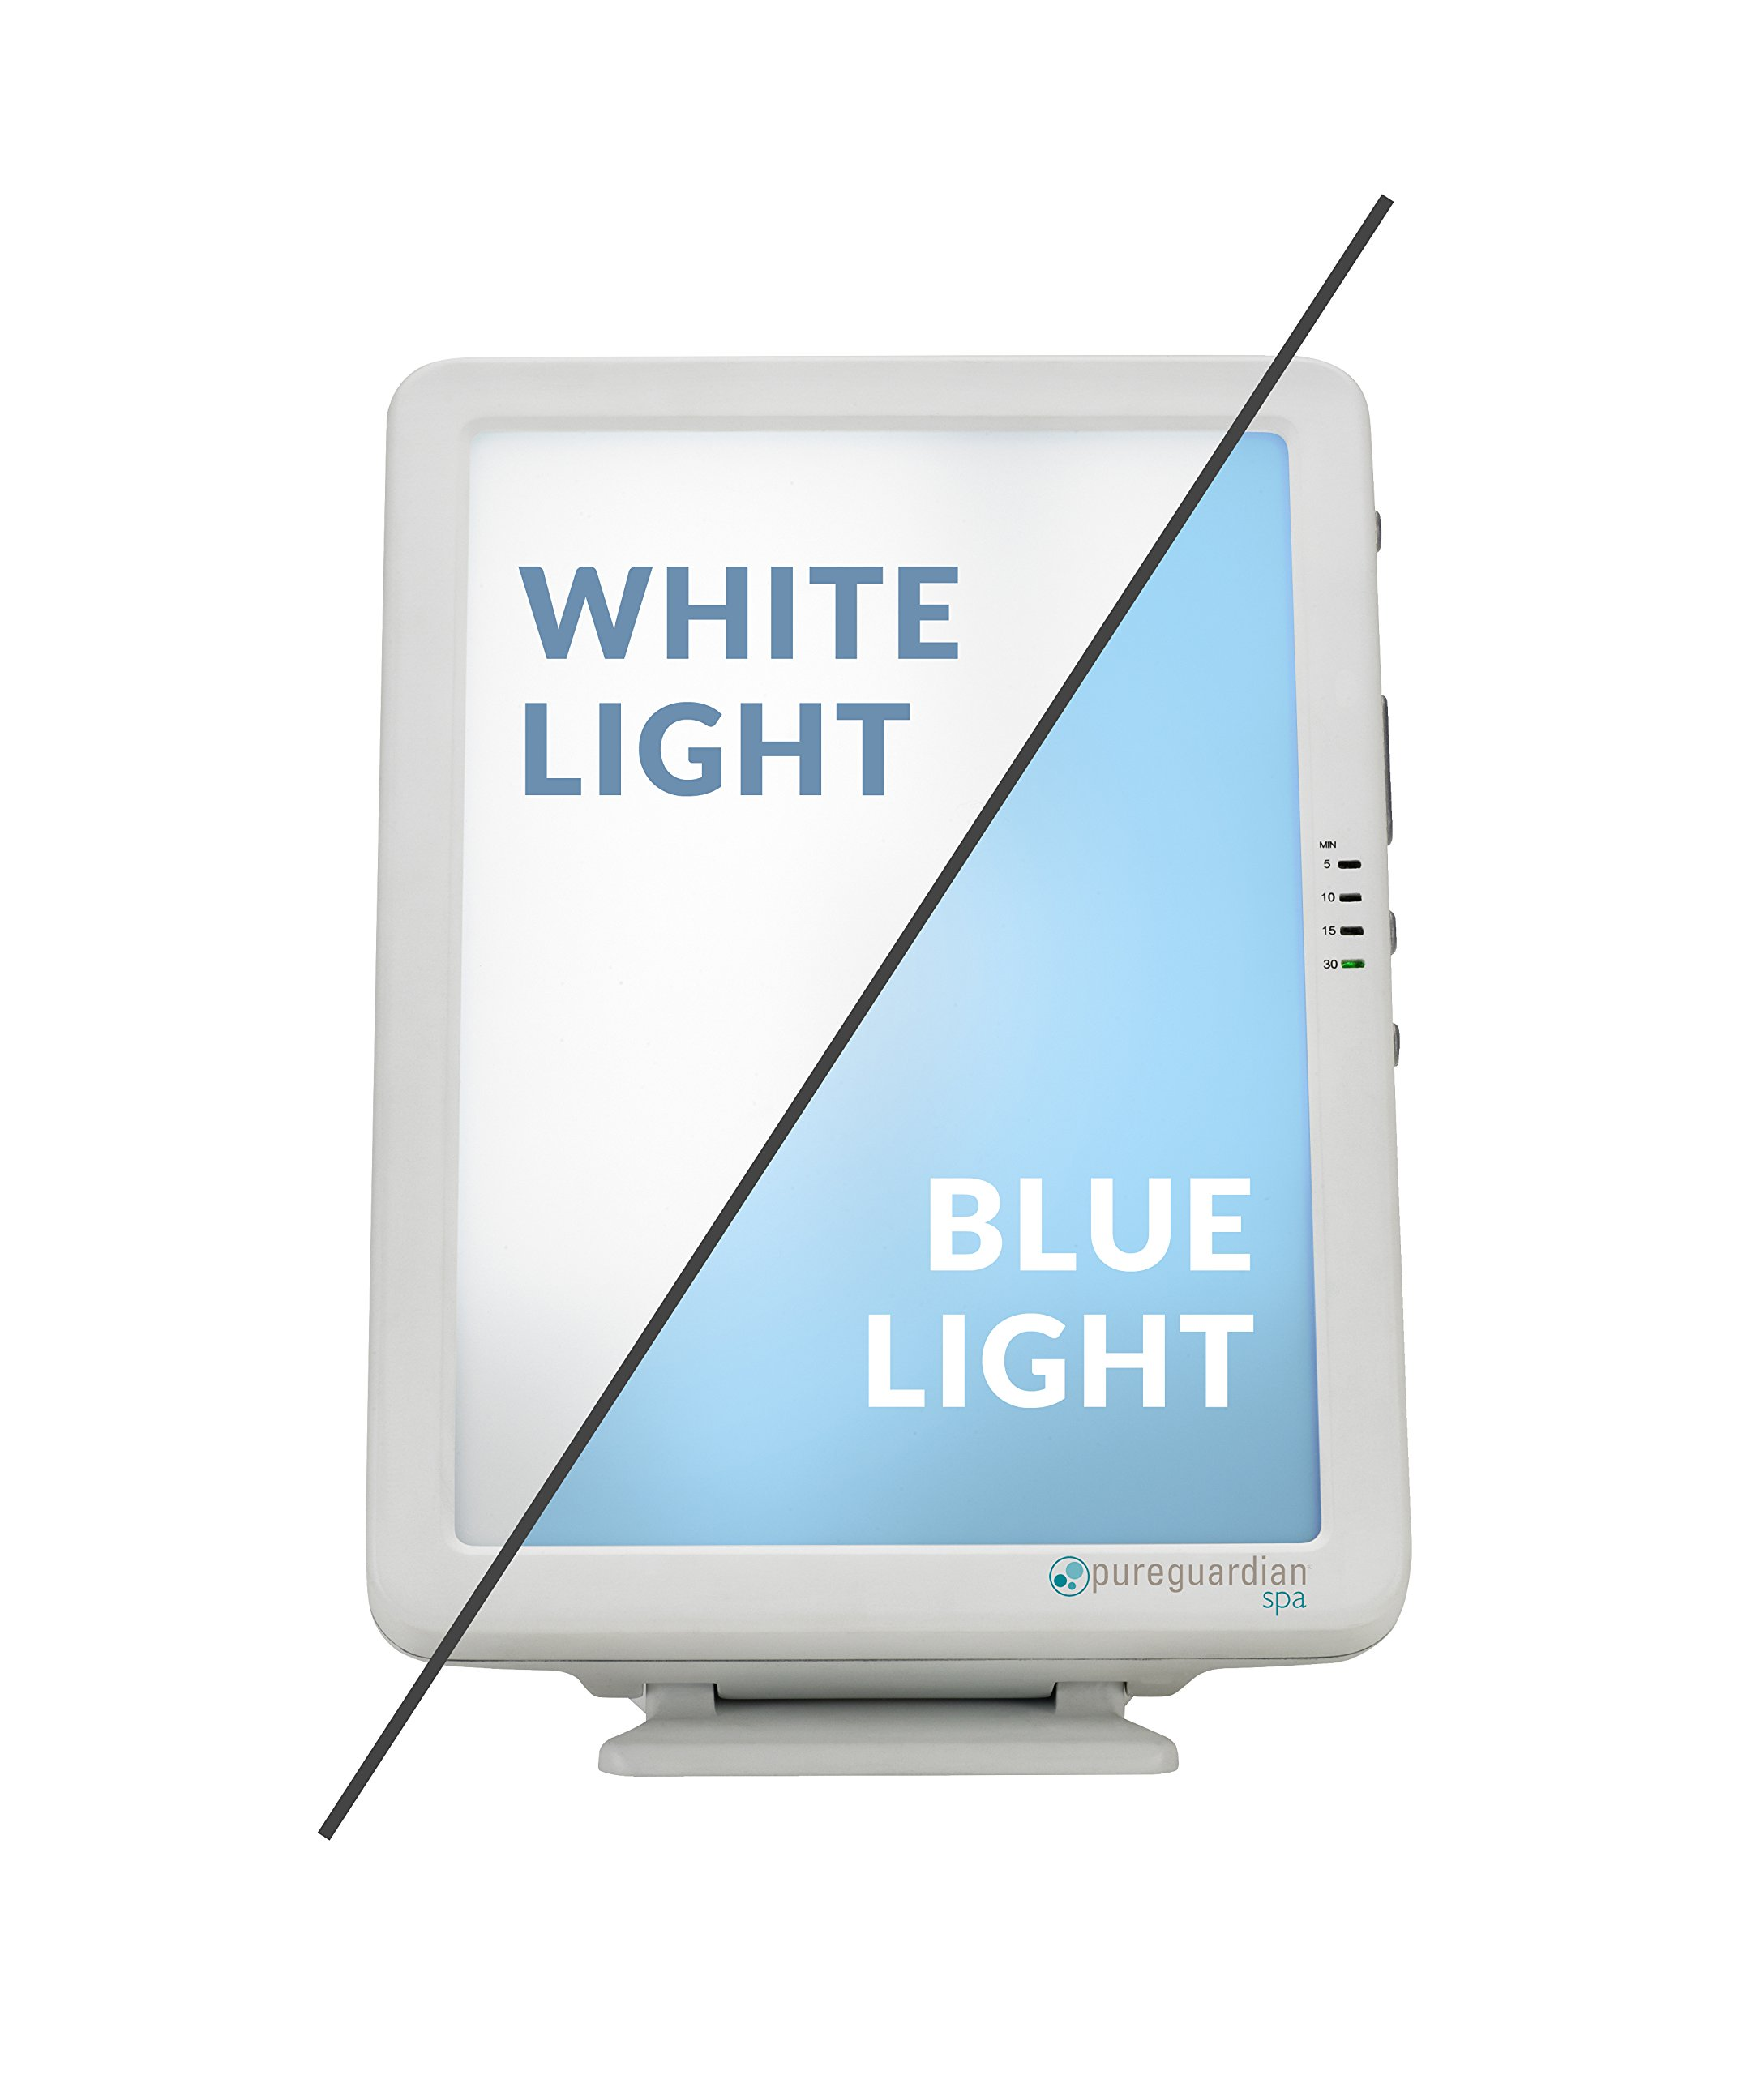 PureGuardian 10,000 LUX Full Spectrum Energy Light with Customizable Blue or White Light Therapy Intensity, Timer, Pure Guardian SPA50CA Energy Lamp